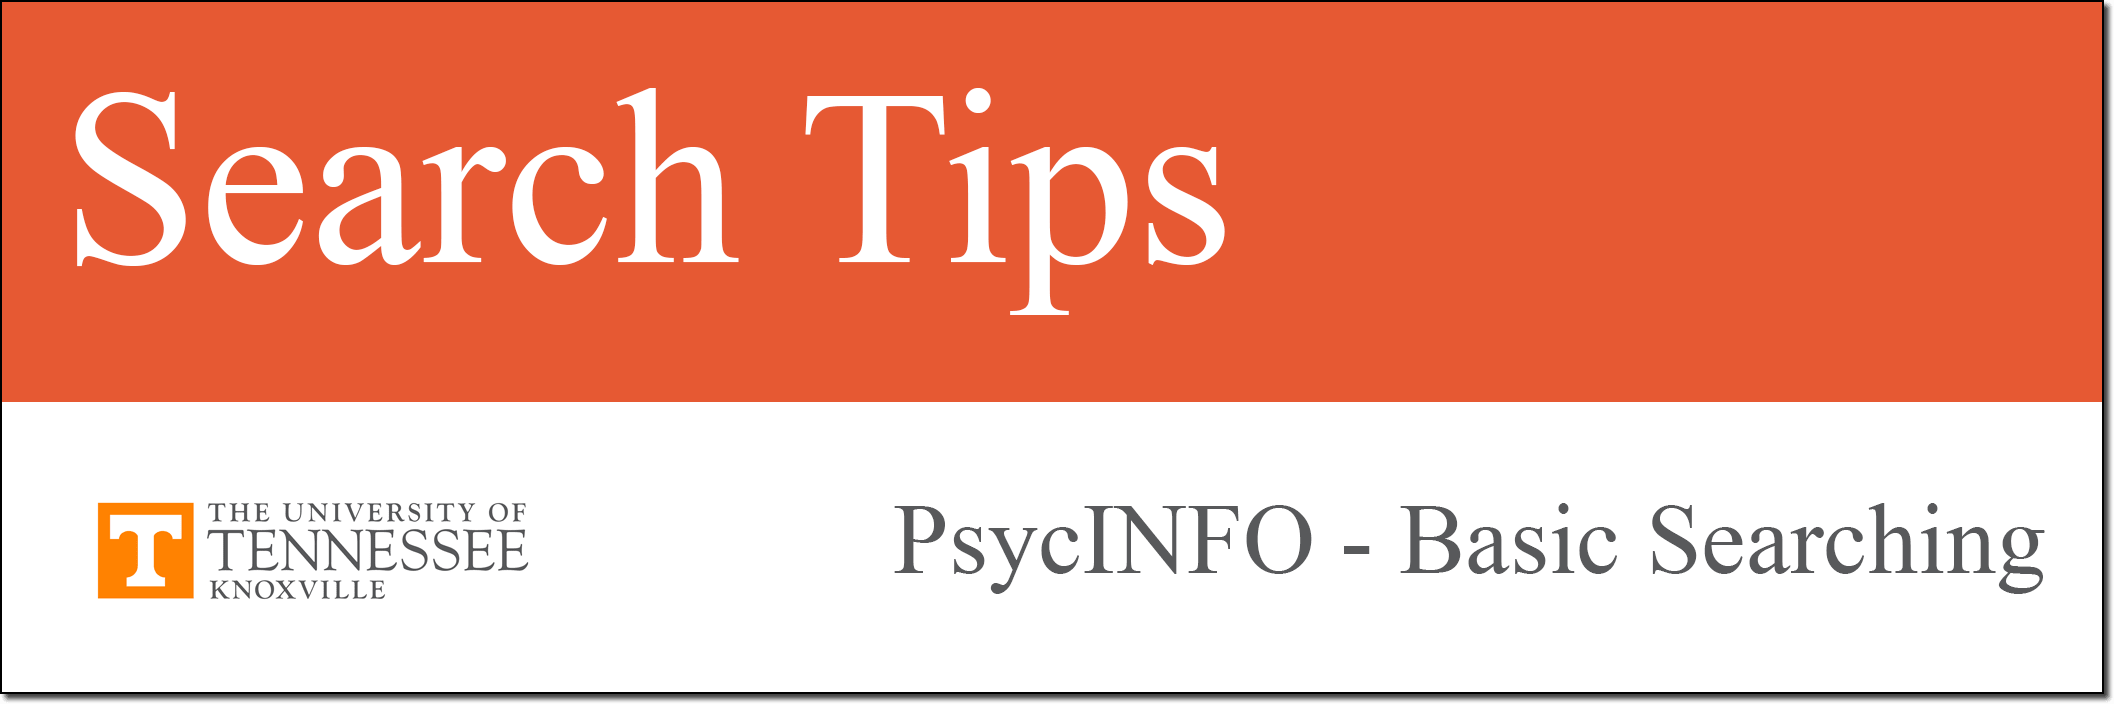 PsycINFO Tutorial Search Tips link.